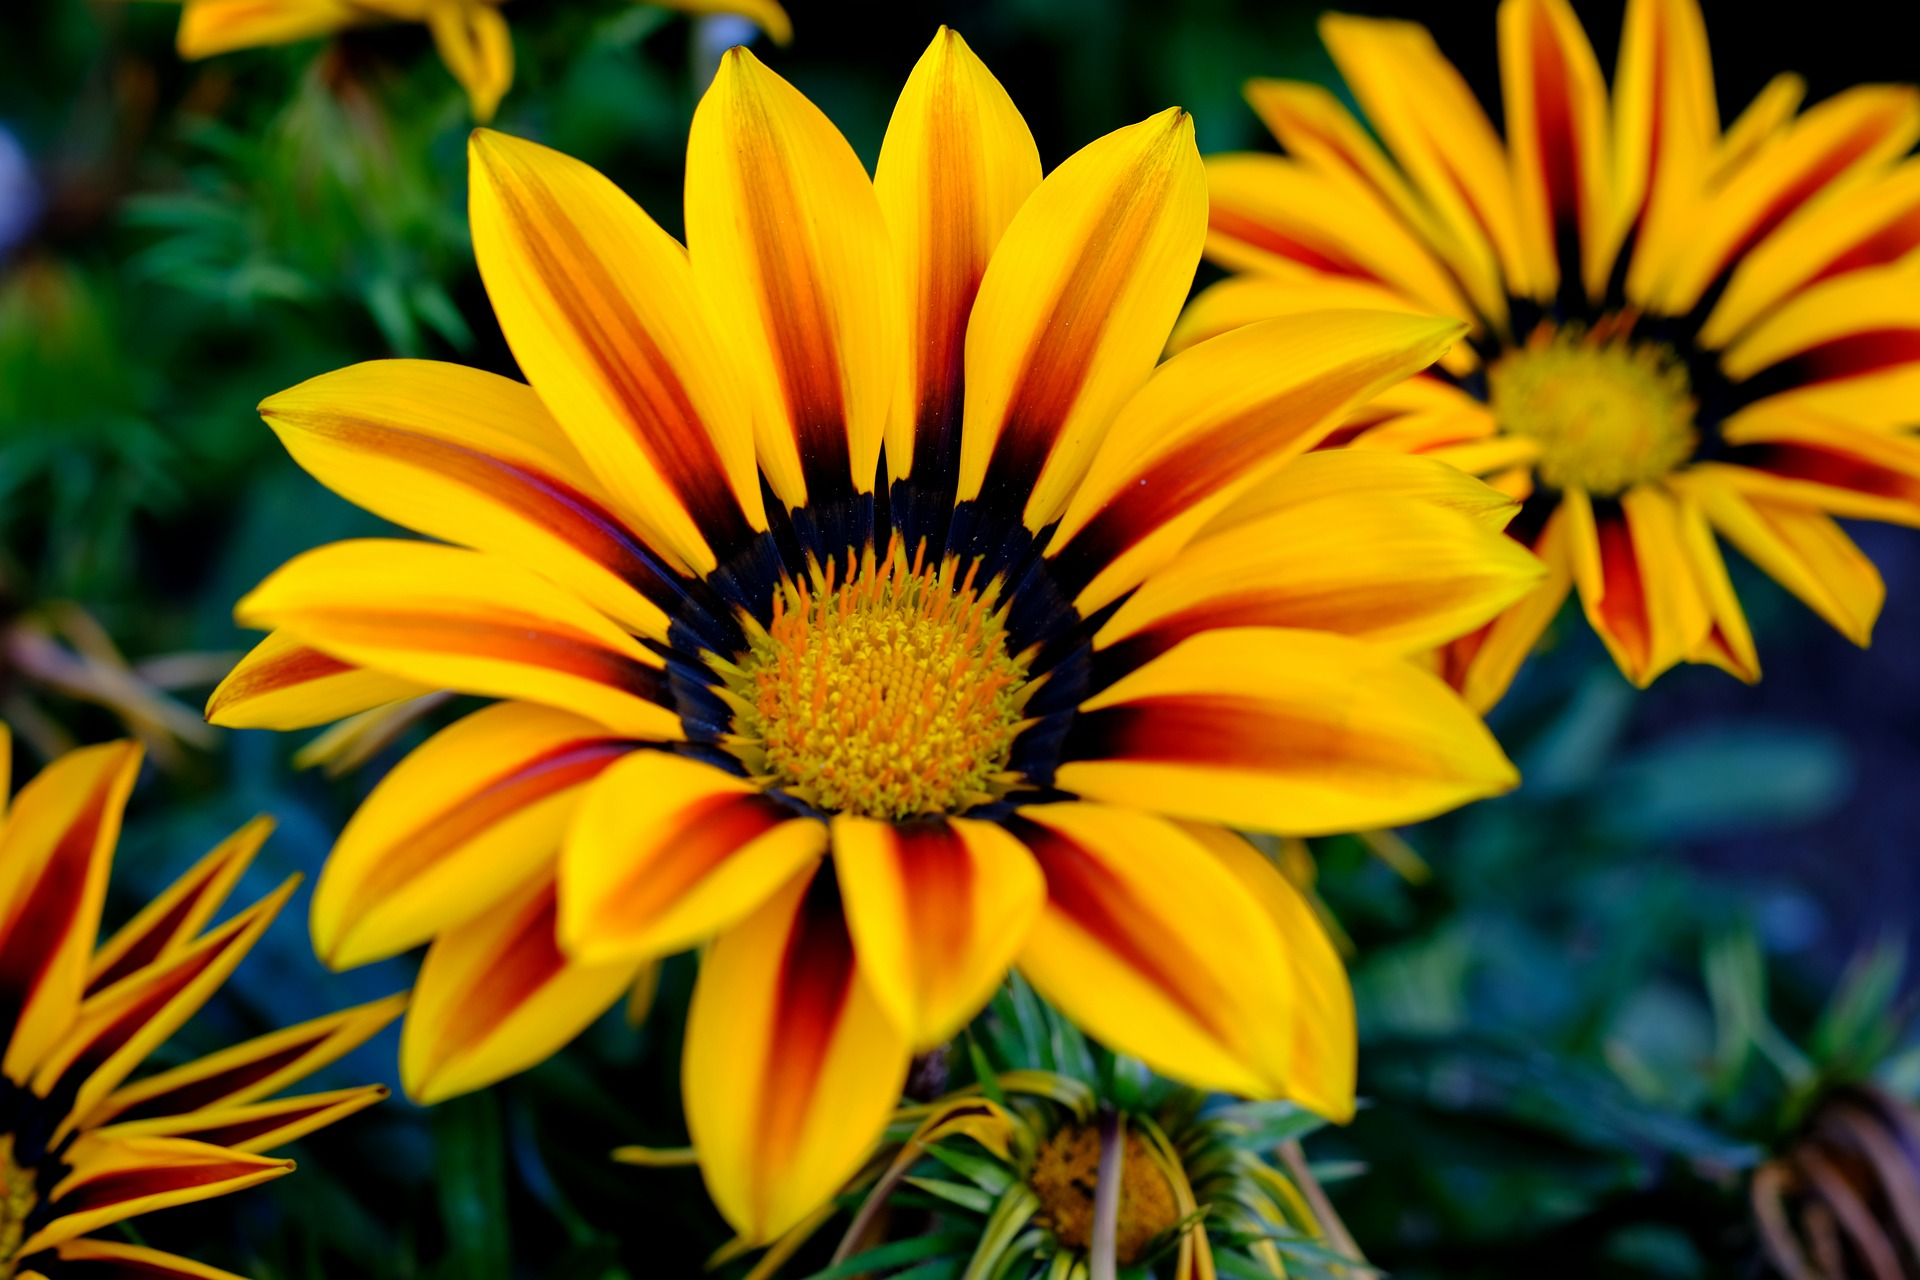 Gazani hybrid flowers - bright yellow with orange-y brown streaks going through each petal